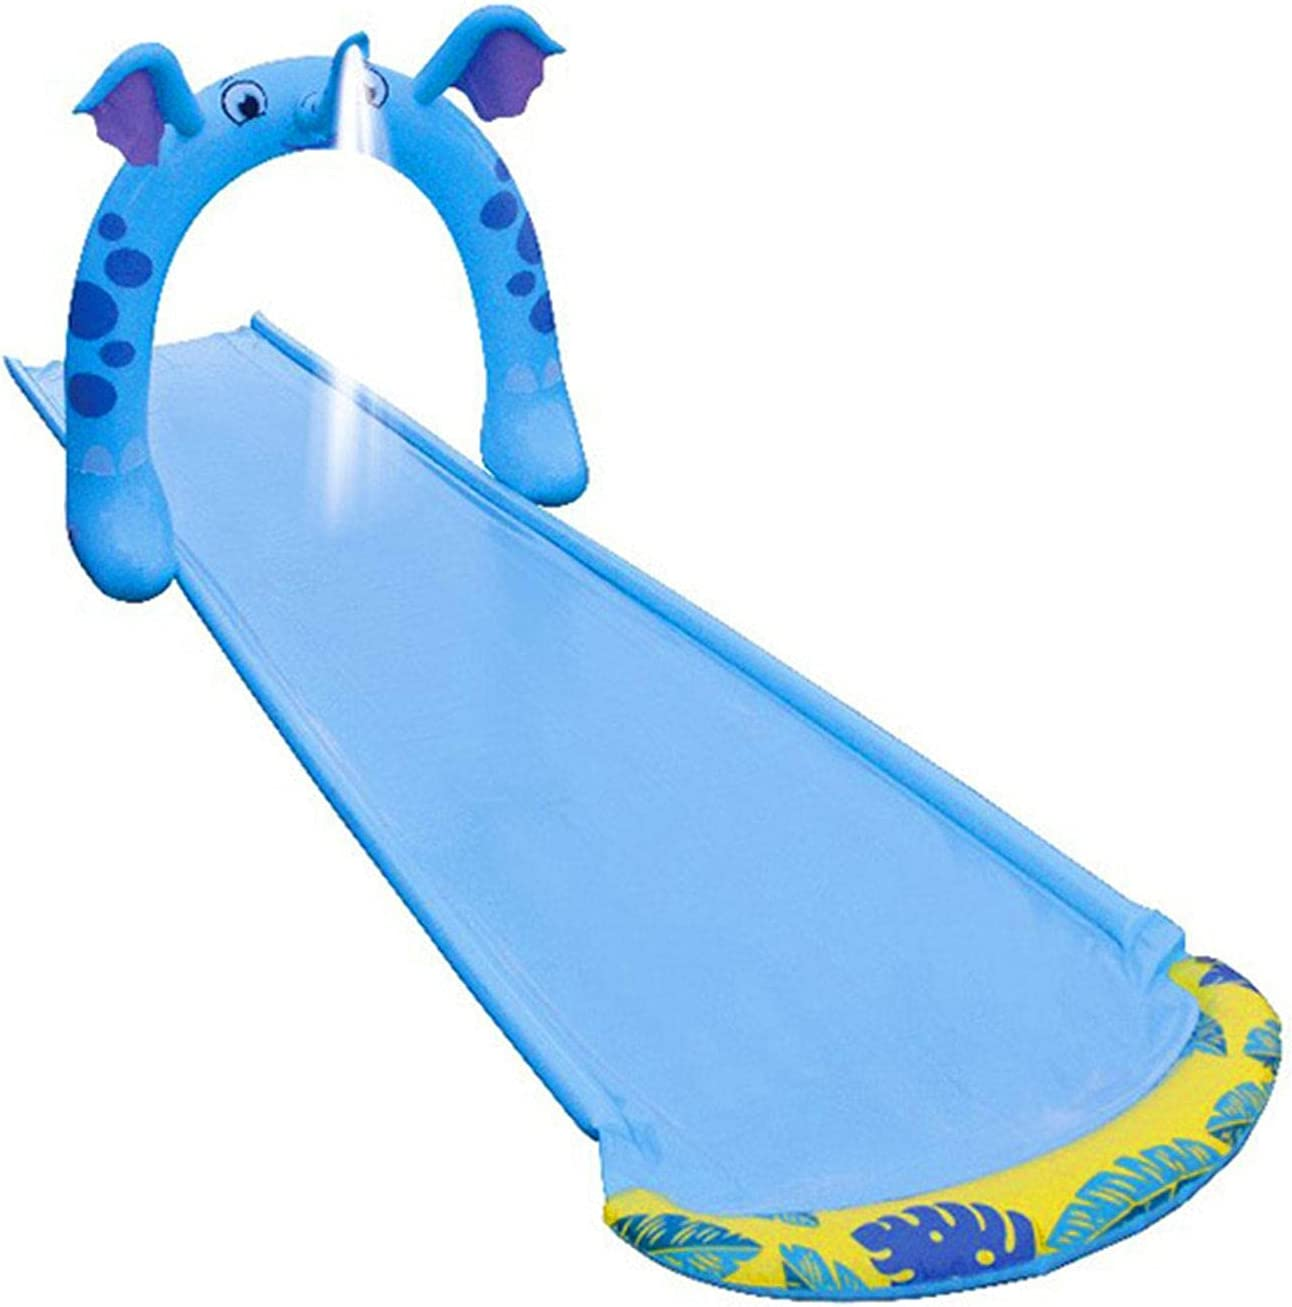 M B Sale Lawn Water Slides for Ranking TOP10 16.4ft Fun Part Waterslide